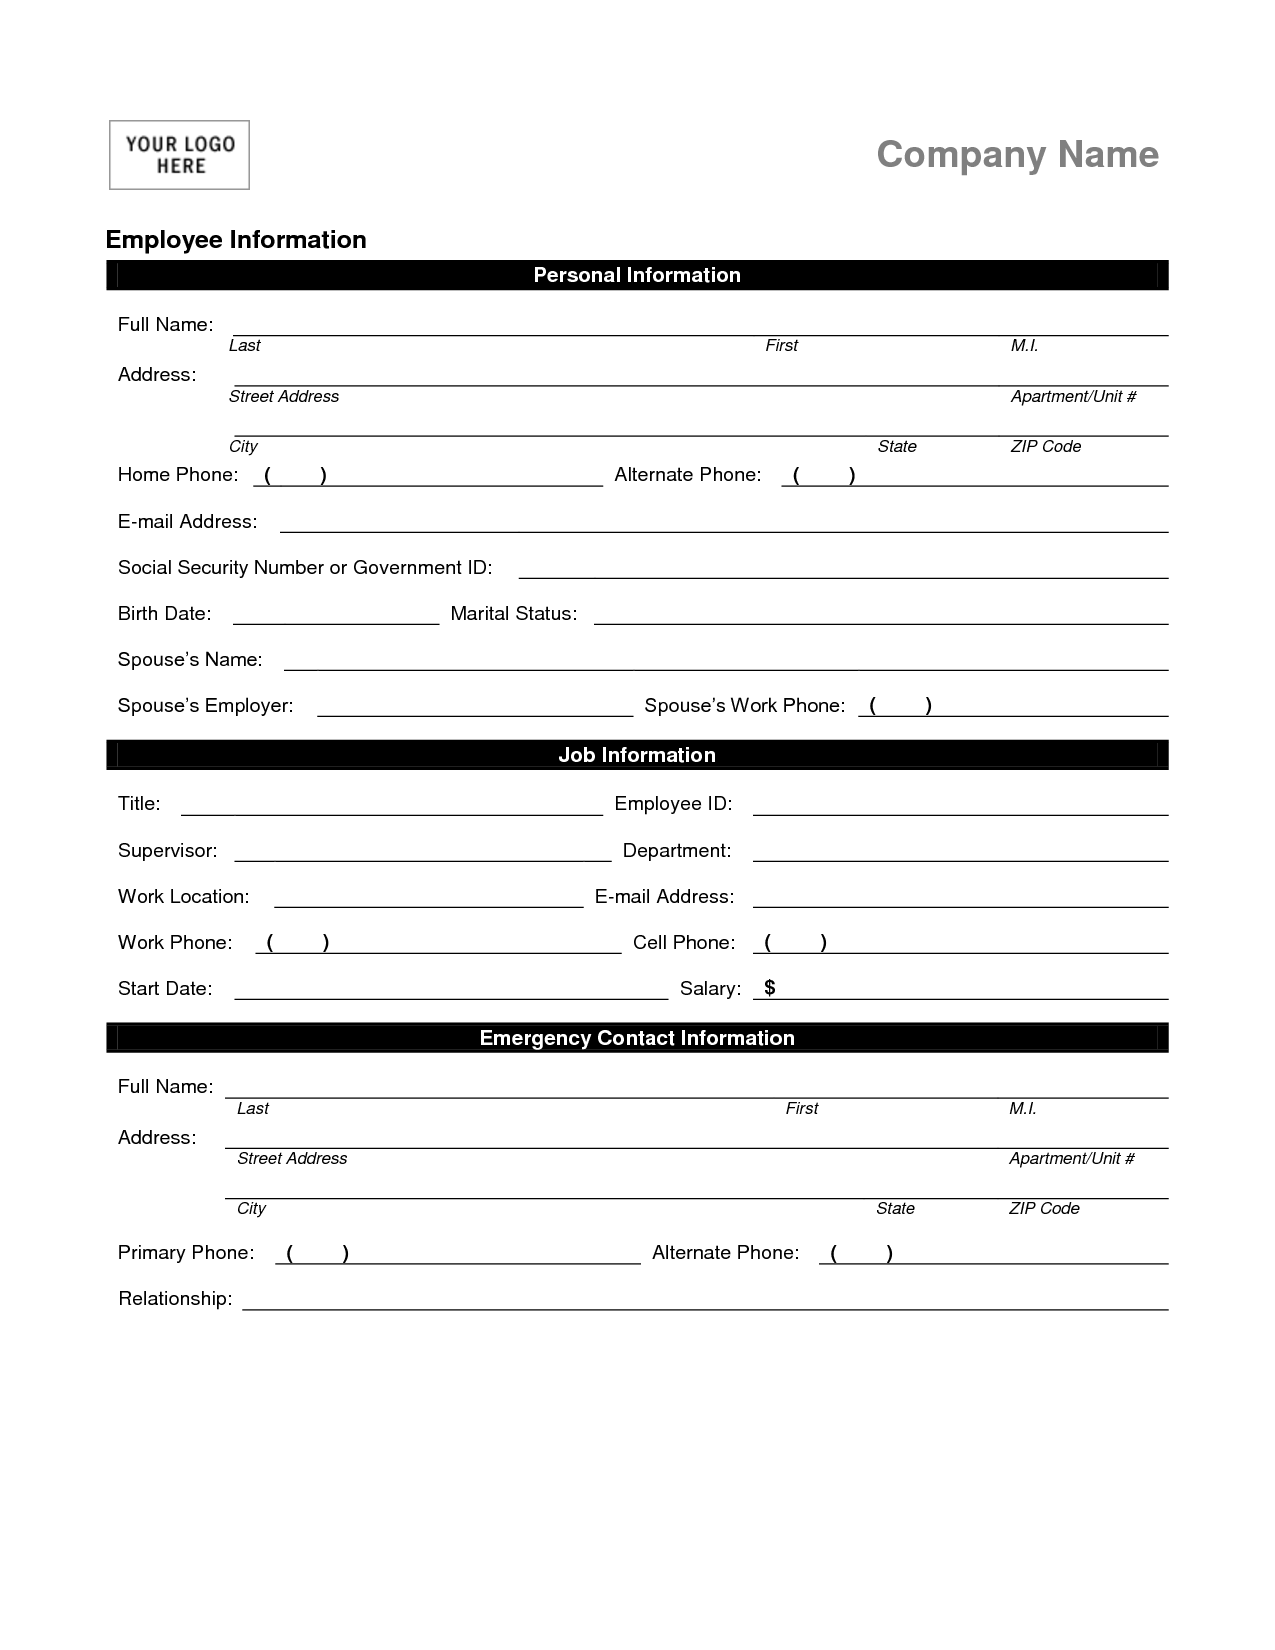 Lovely Personal Info Form Templates On Information Templates